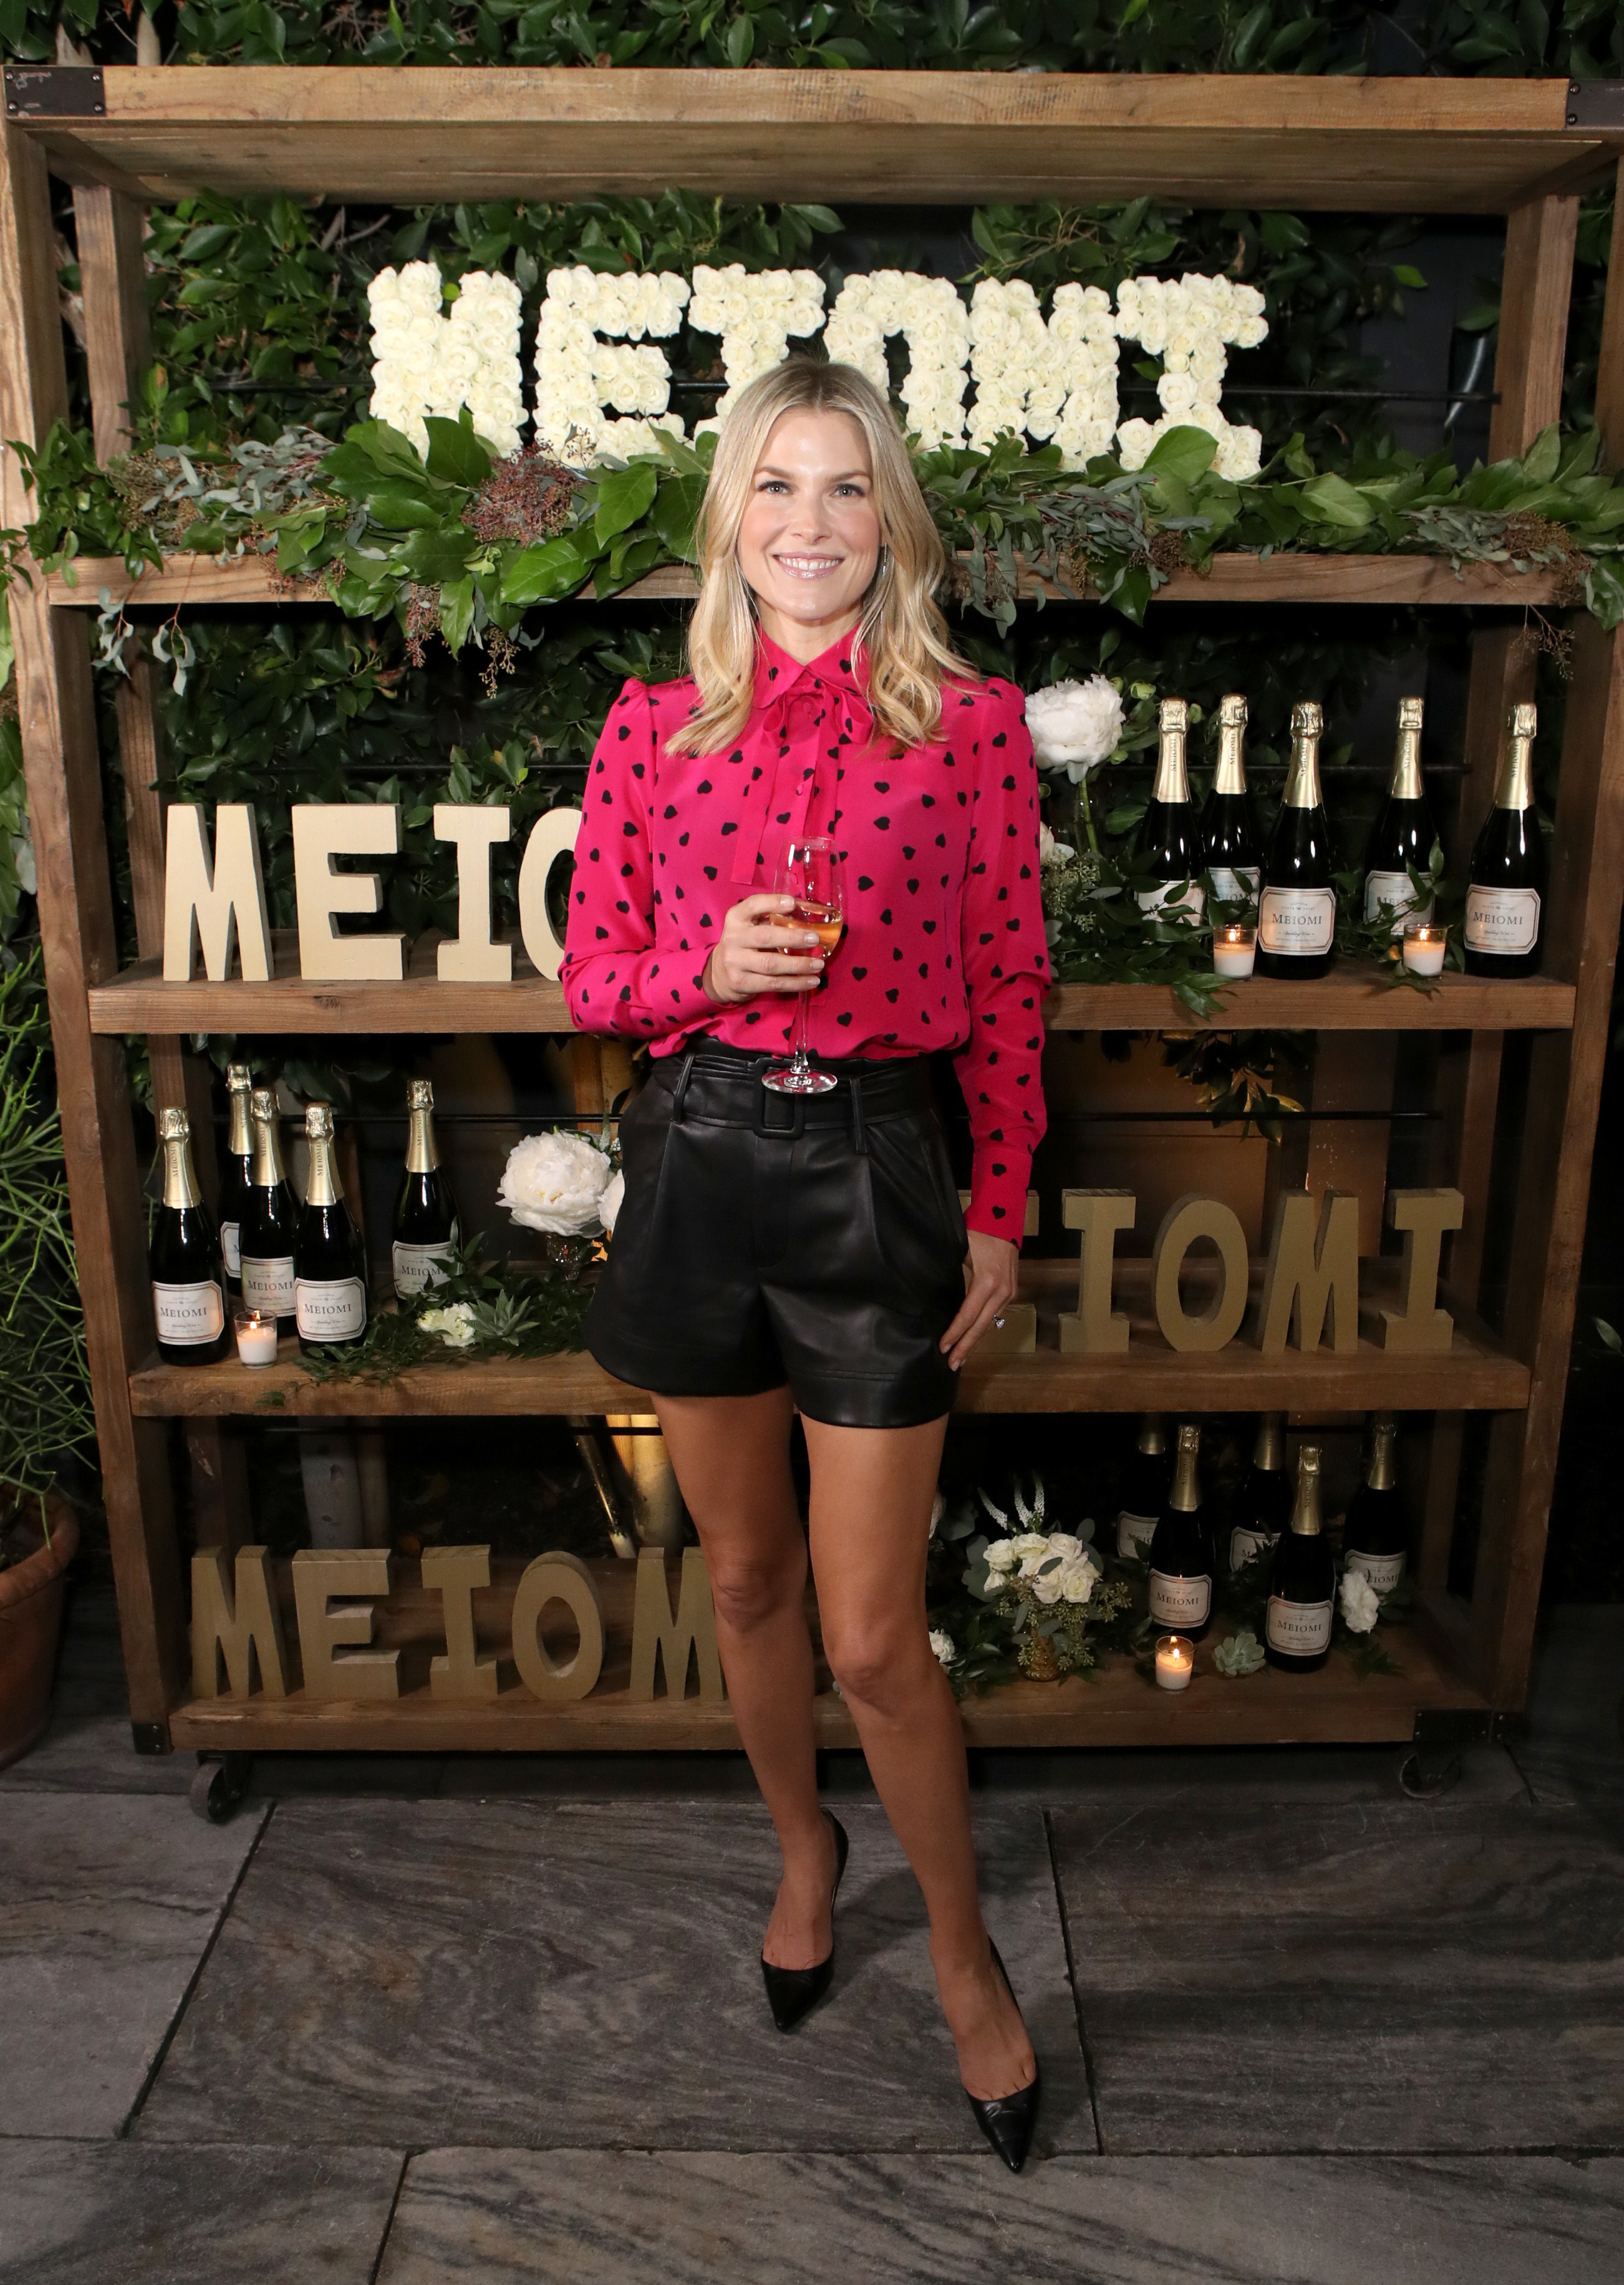 Ali Larter attends the Meiomi Sparkling Wine launch event at Ysabel in West Hollywood on Dec. 4, 2018.